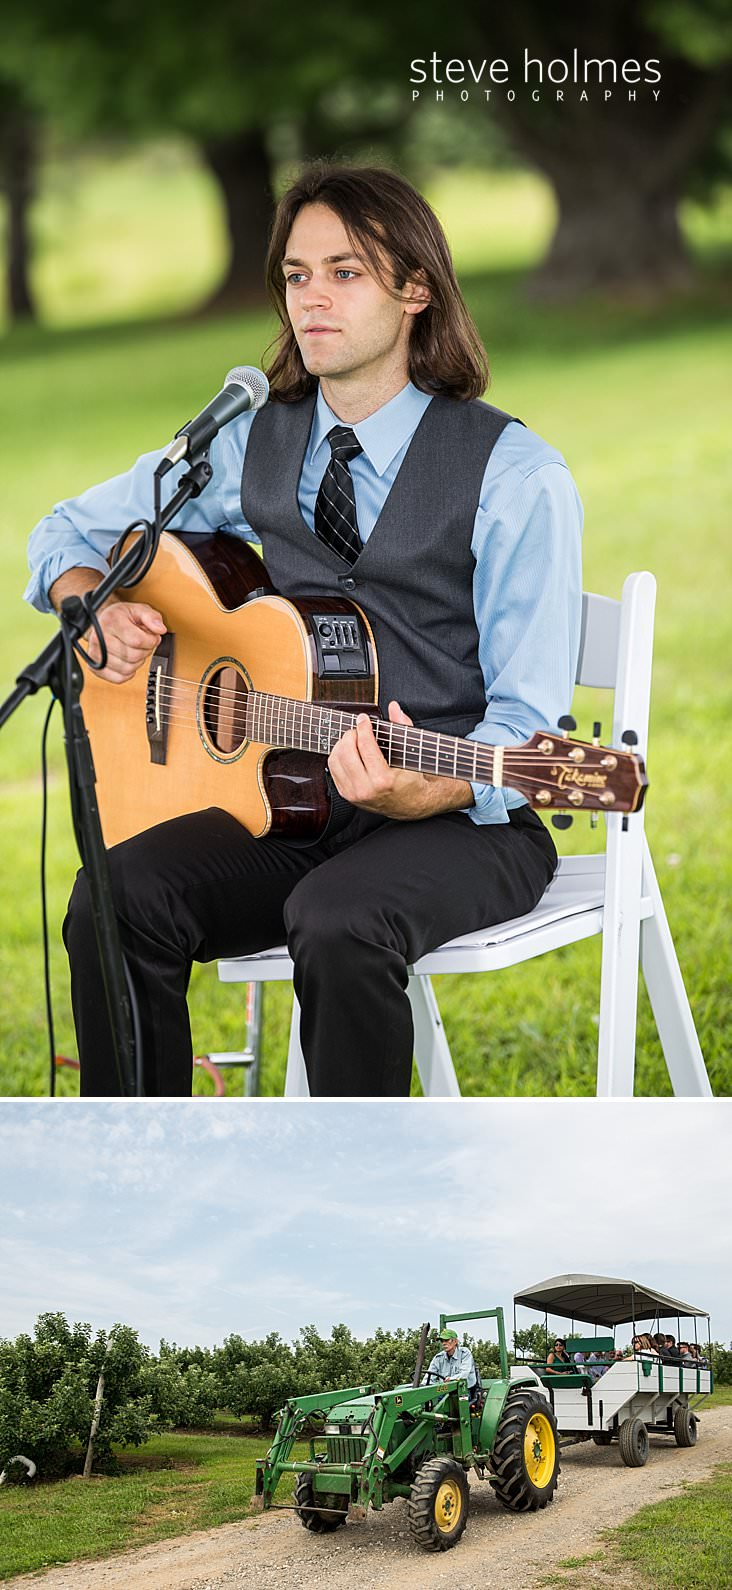 23_A guitarist plays to open the outdoor wedding ceremony.jpg